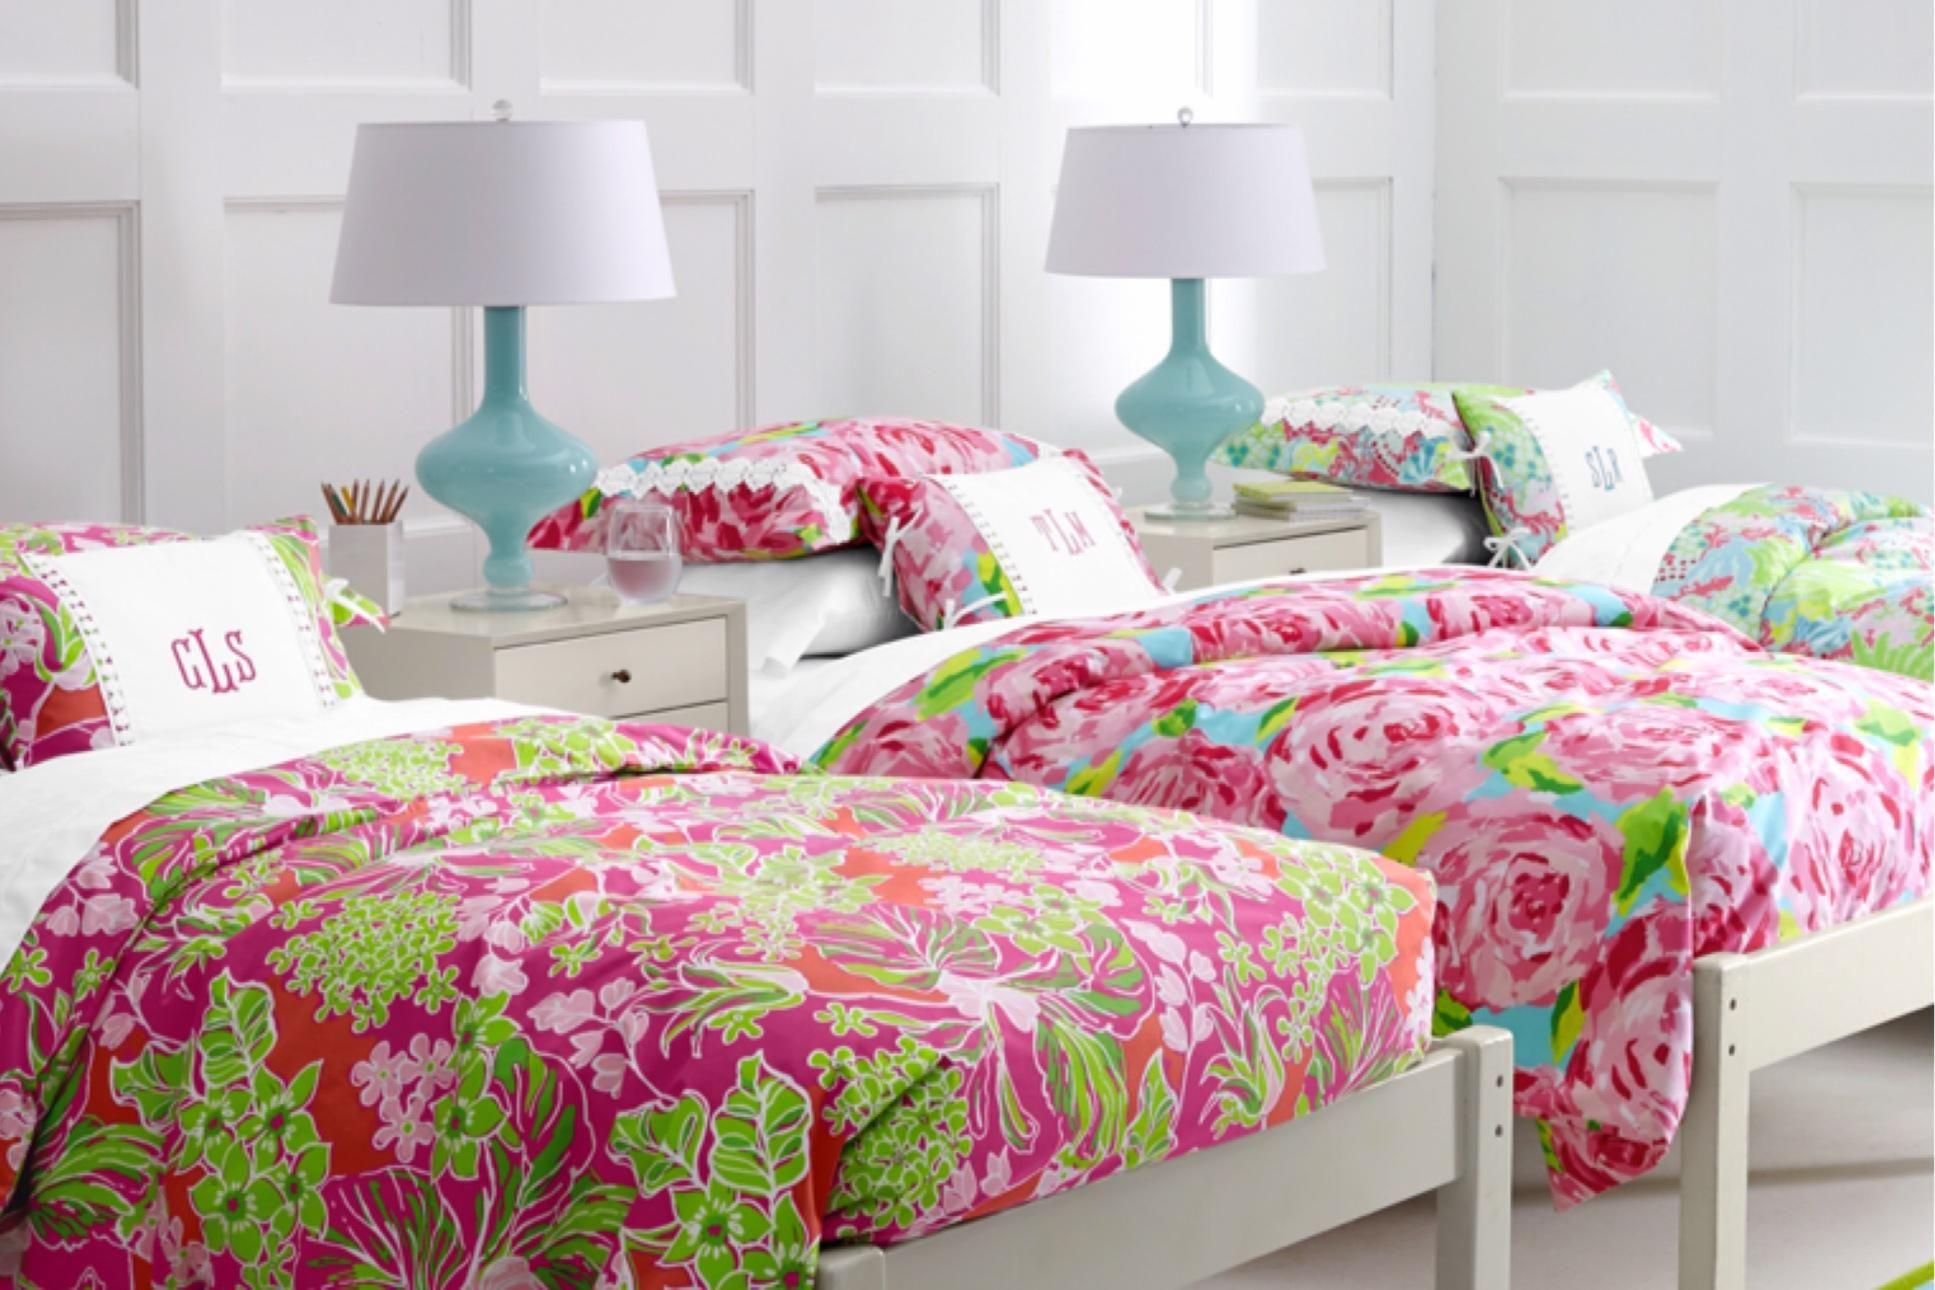 Lilly Pulitzer Home Collection for Hill Lilly